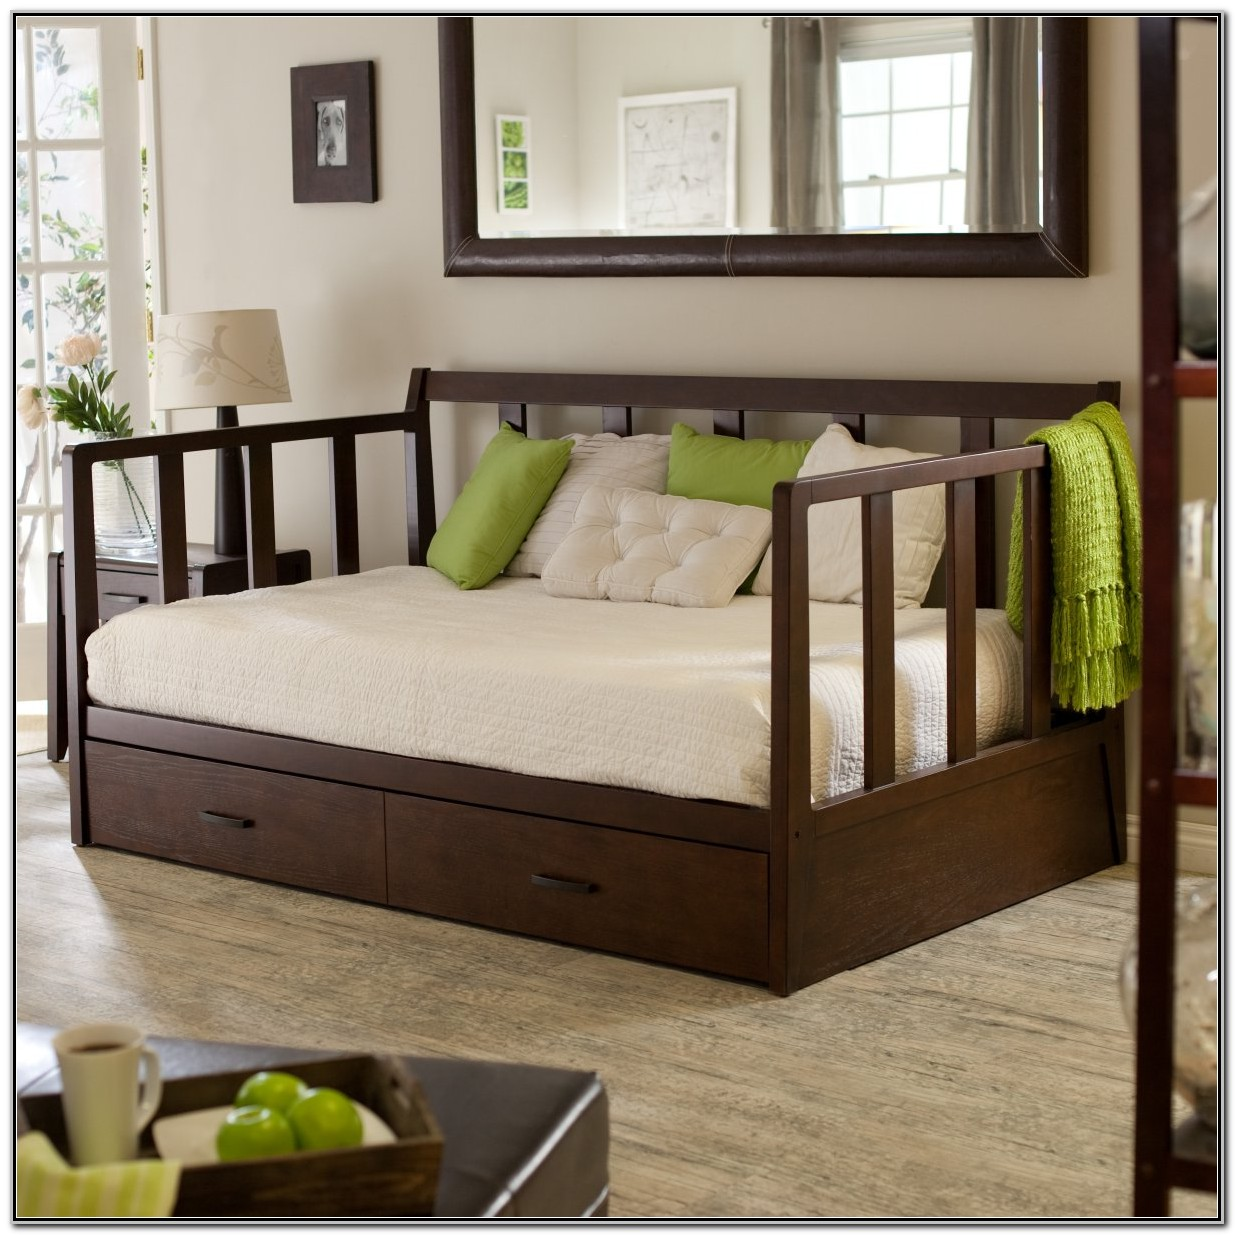 Living Room Daybed With Trundle